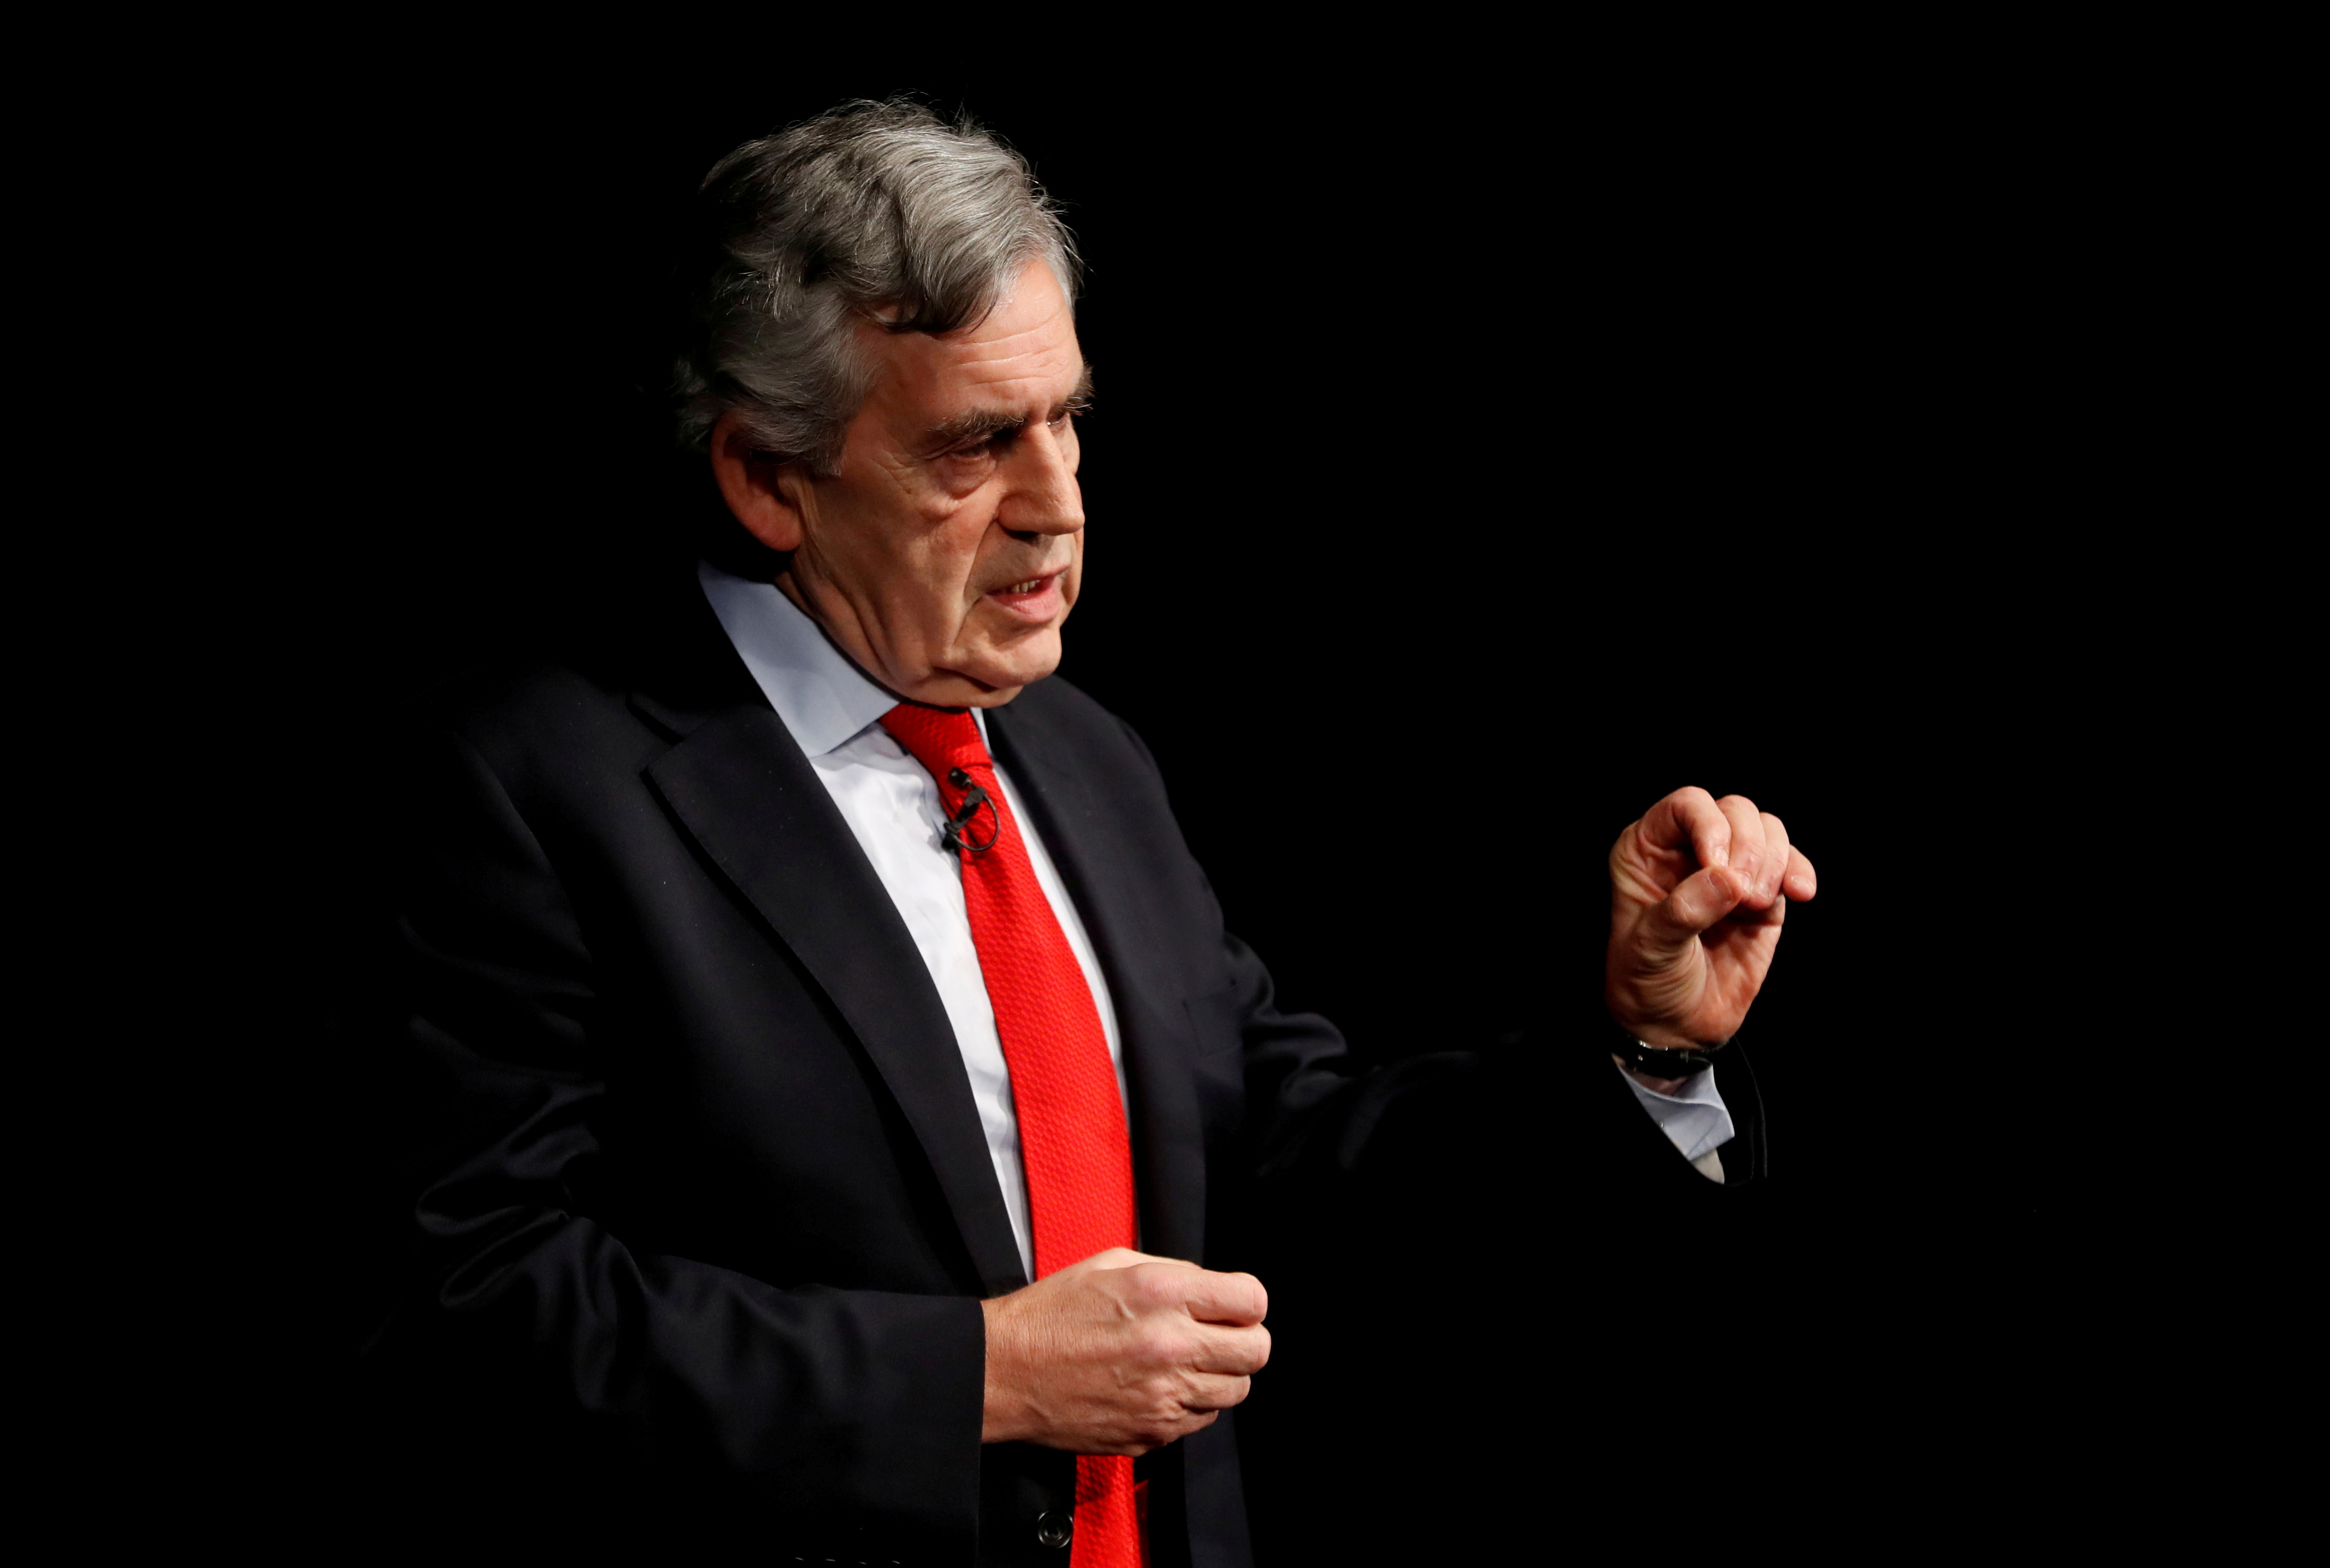 Britain's former Prime Minister Gordon Brown speaks at an event in Edinburgh, Scotland, Britain January 17, 2019. REUTERS/Russell Cheyne